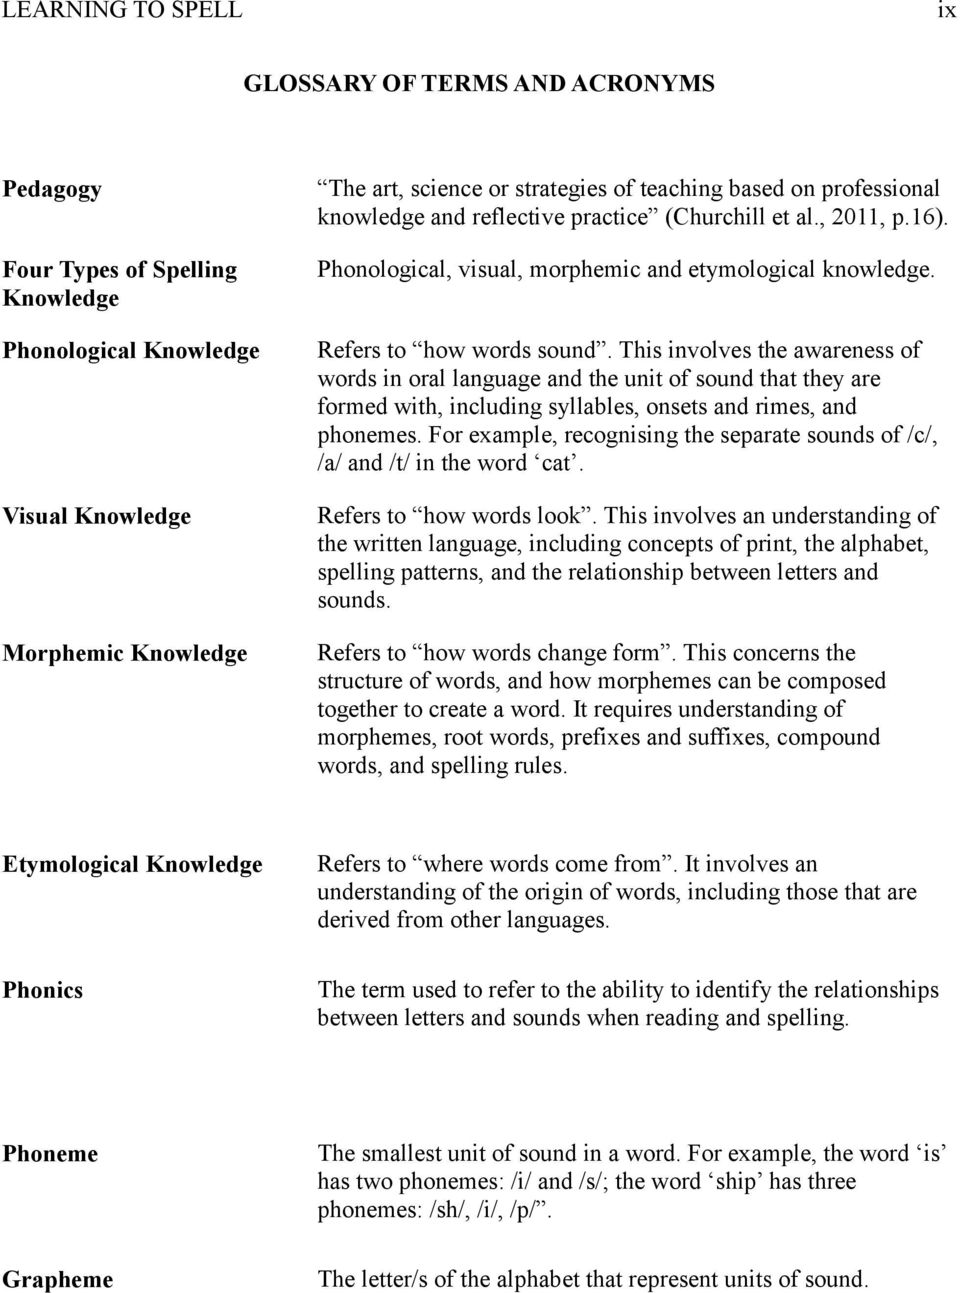 naplan spelling words yr 3 pdf